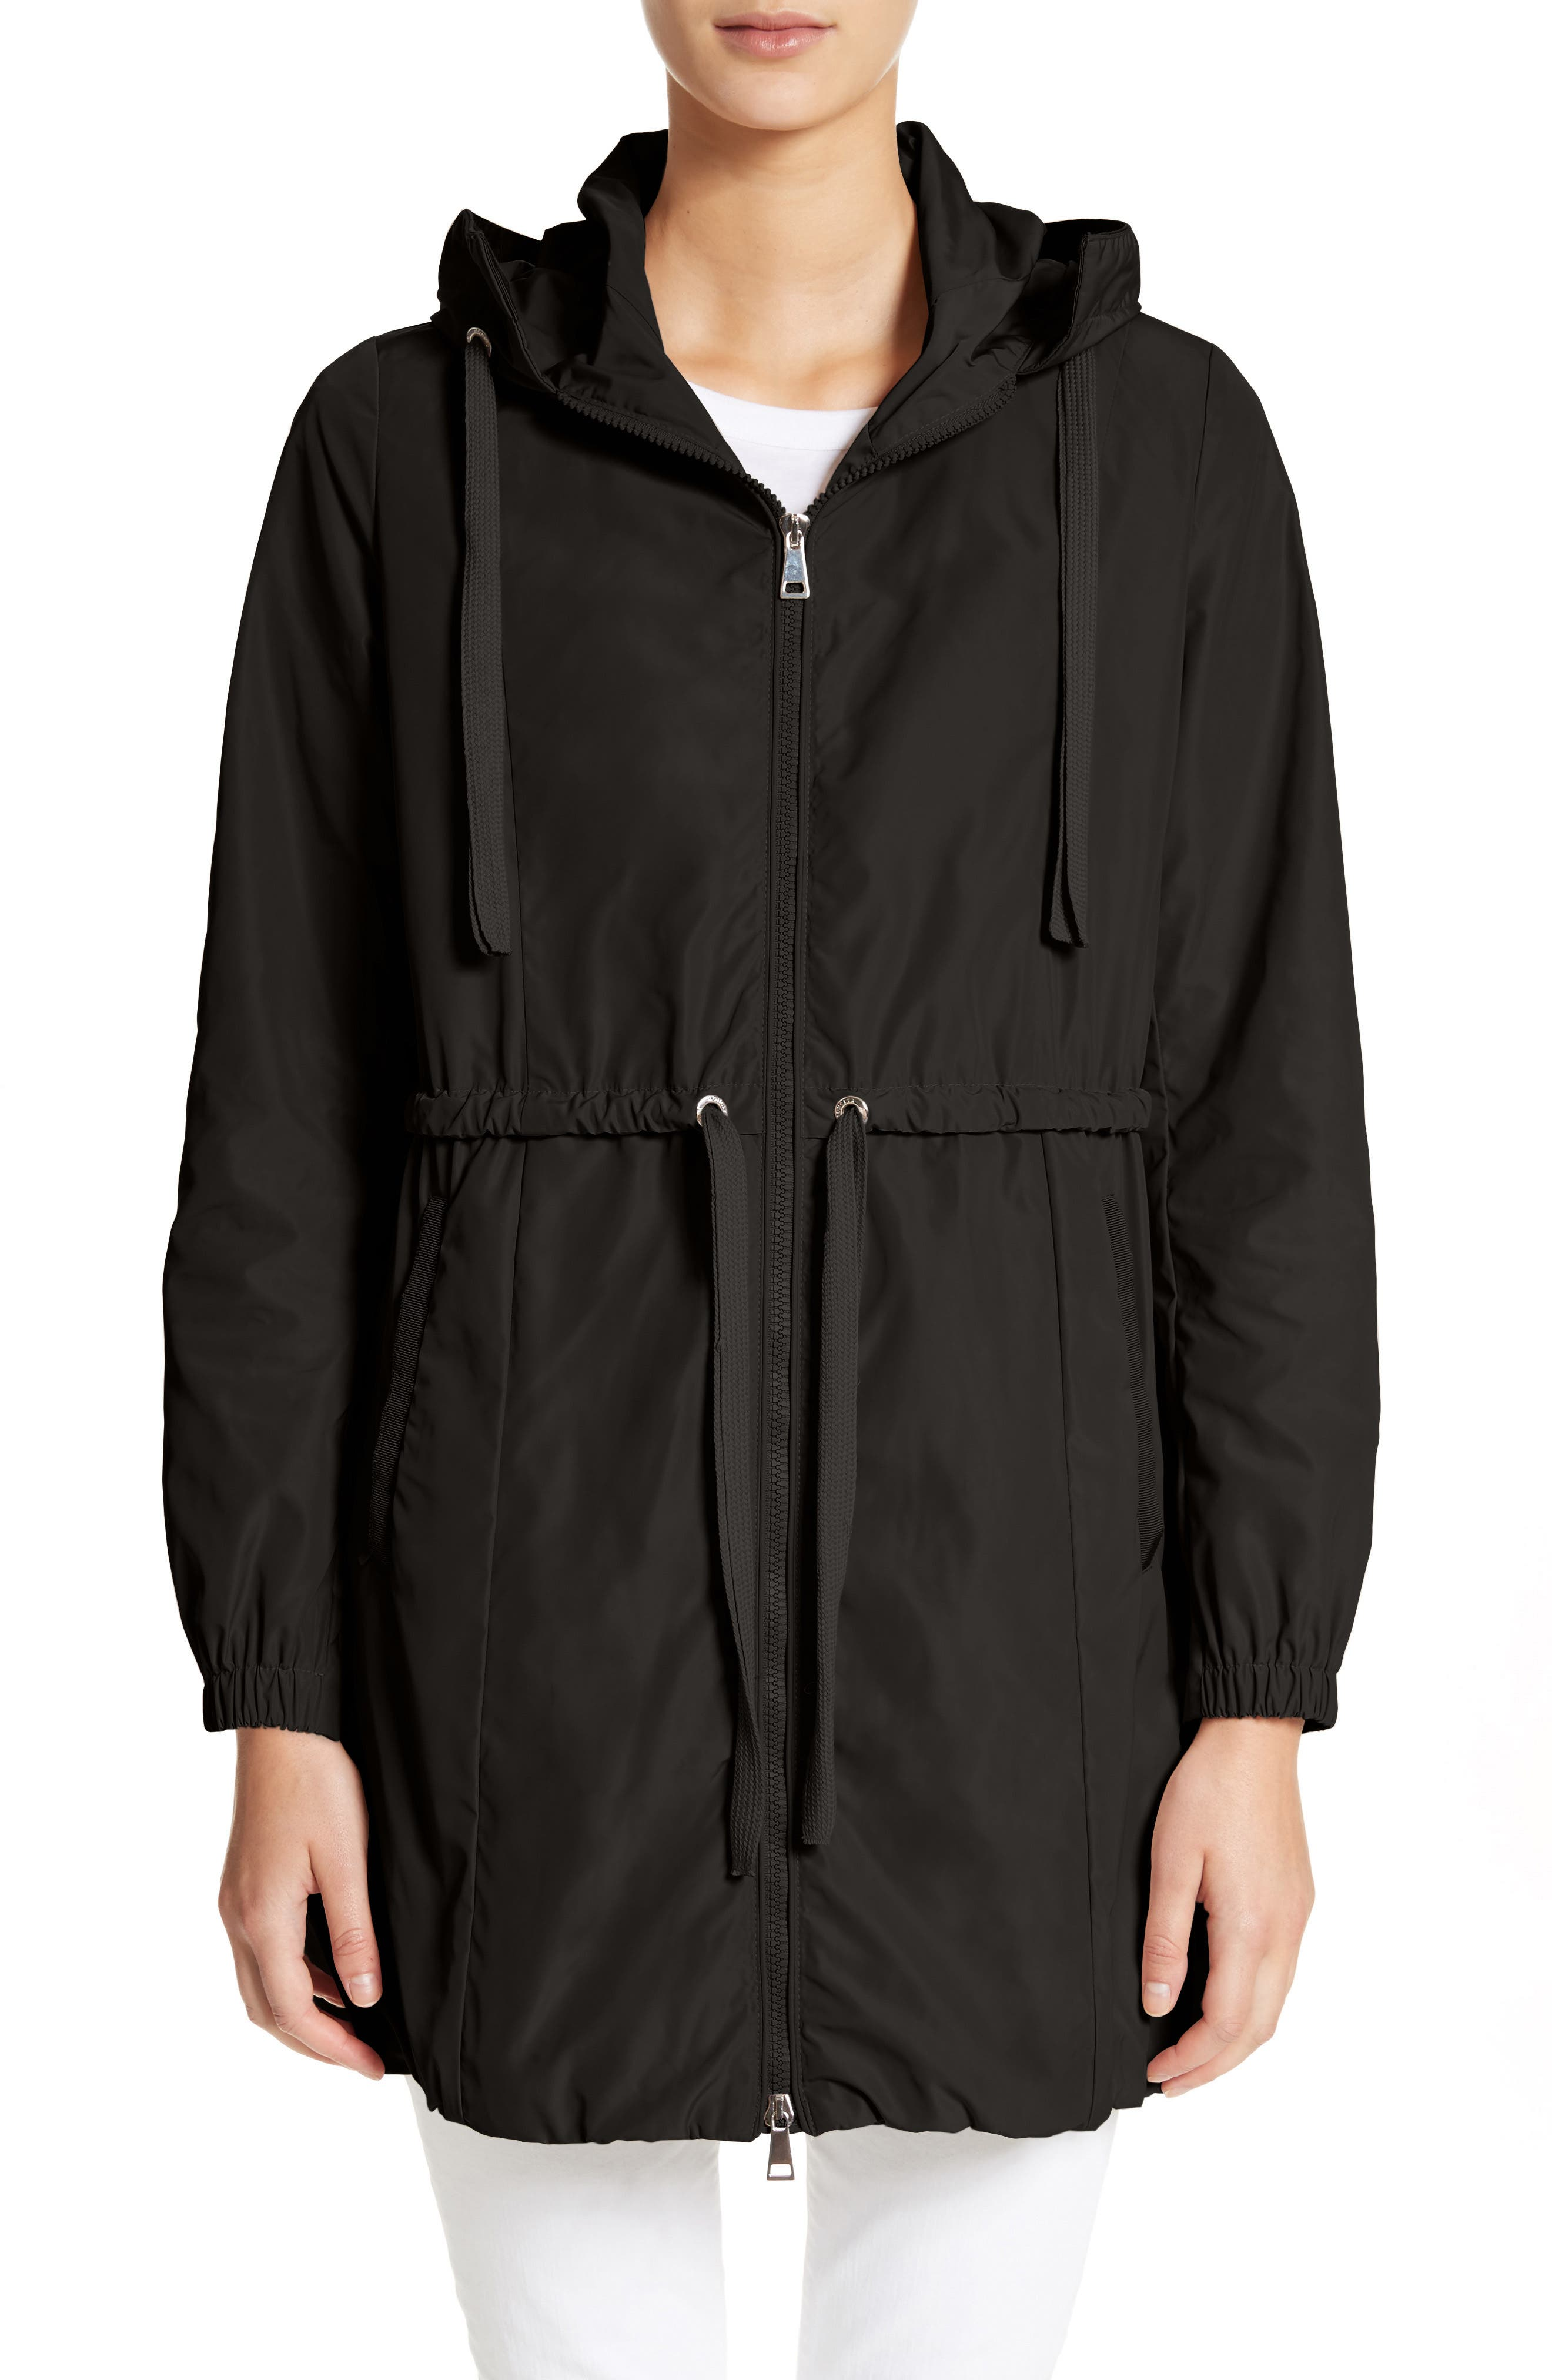 MONCLER, Topaze Water Resistant Hooded Jacket, Main thumbnail 1, color, BLACK